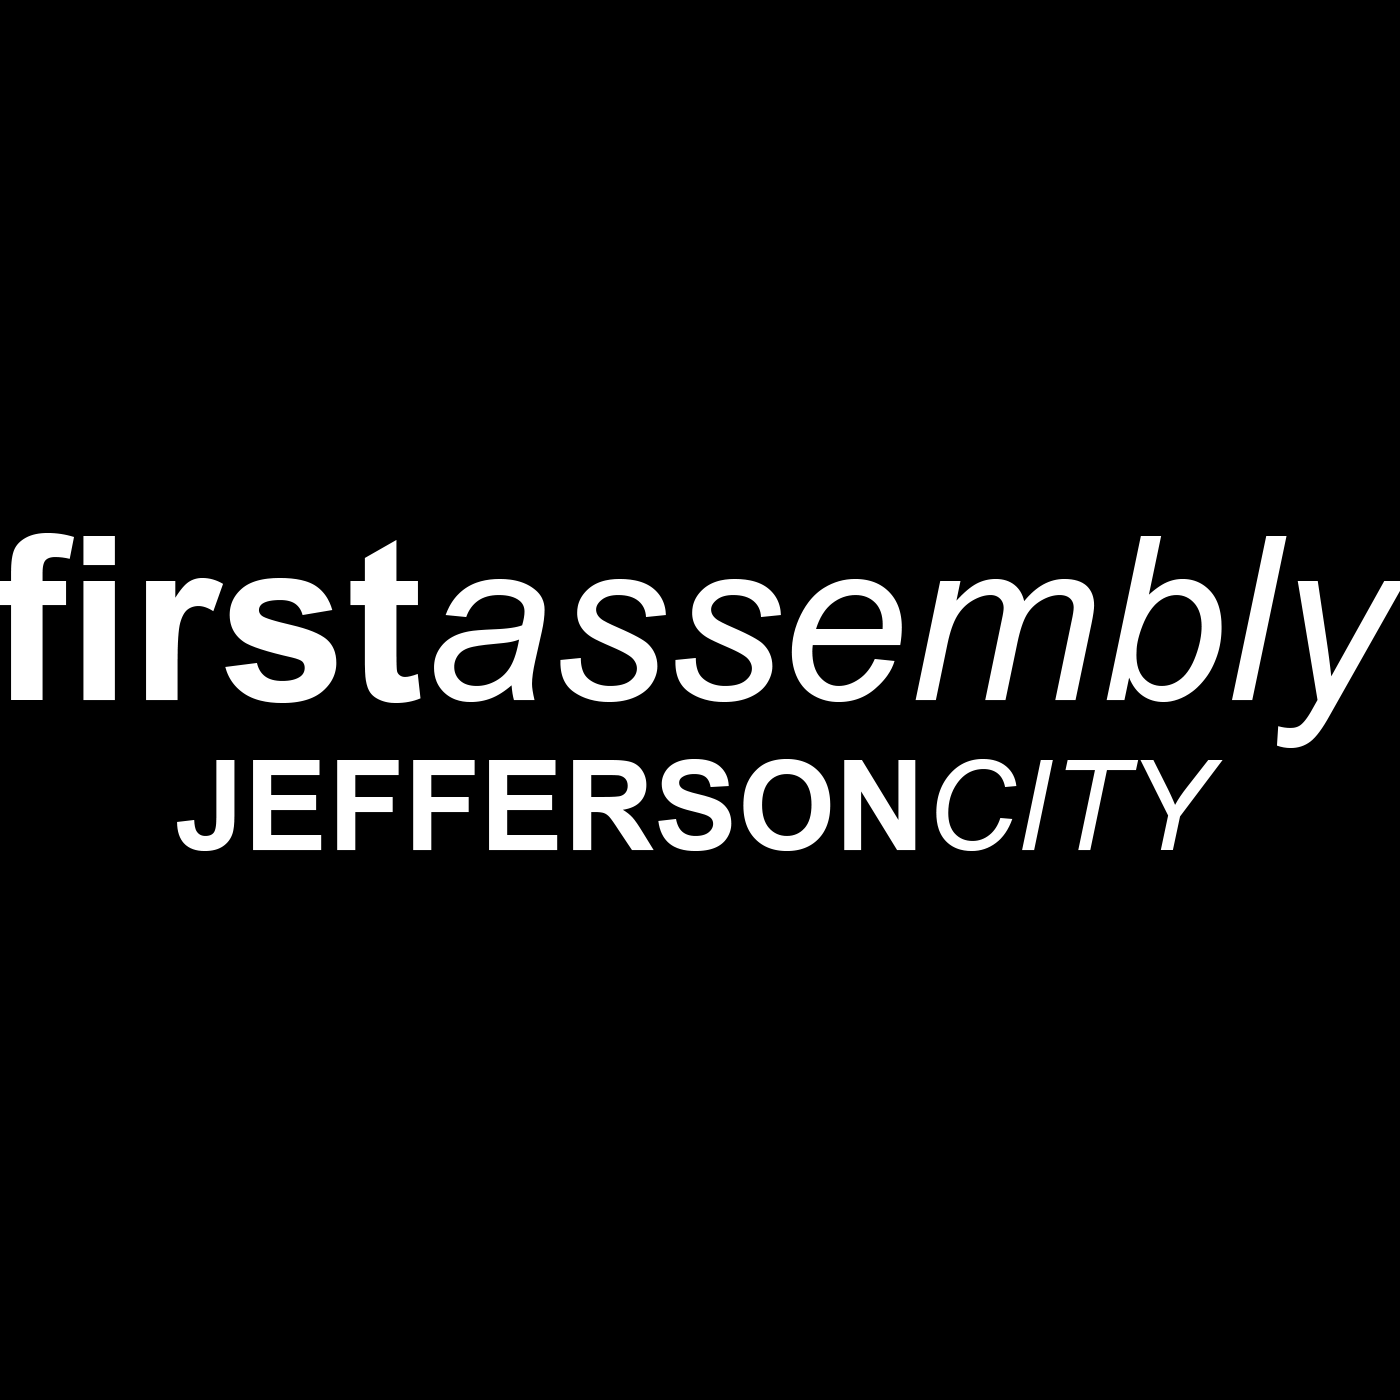 Sermons – First Assembly of God